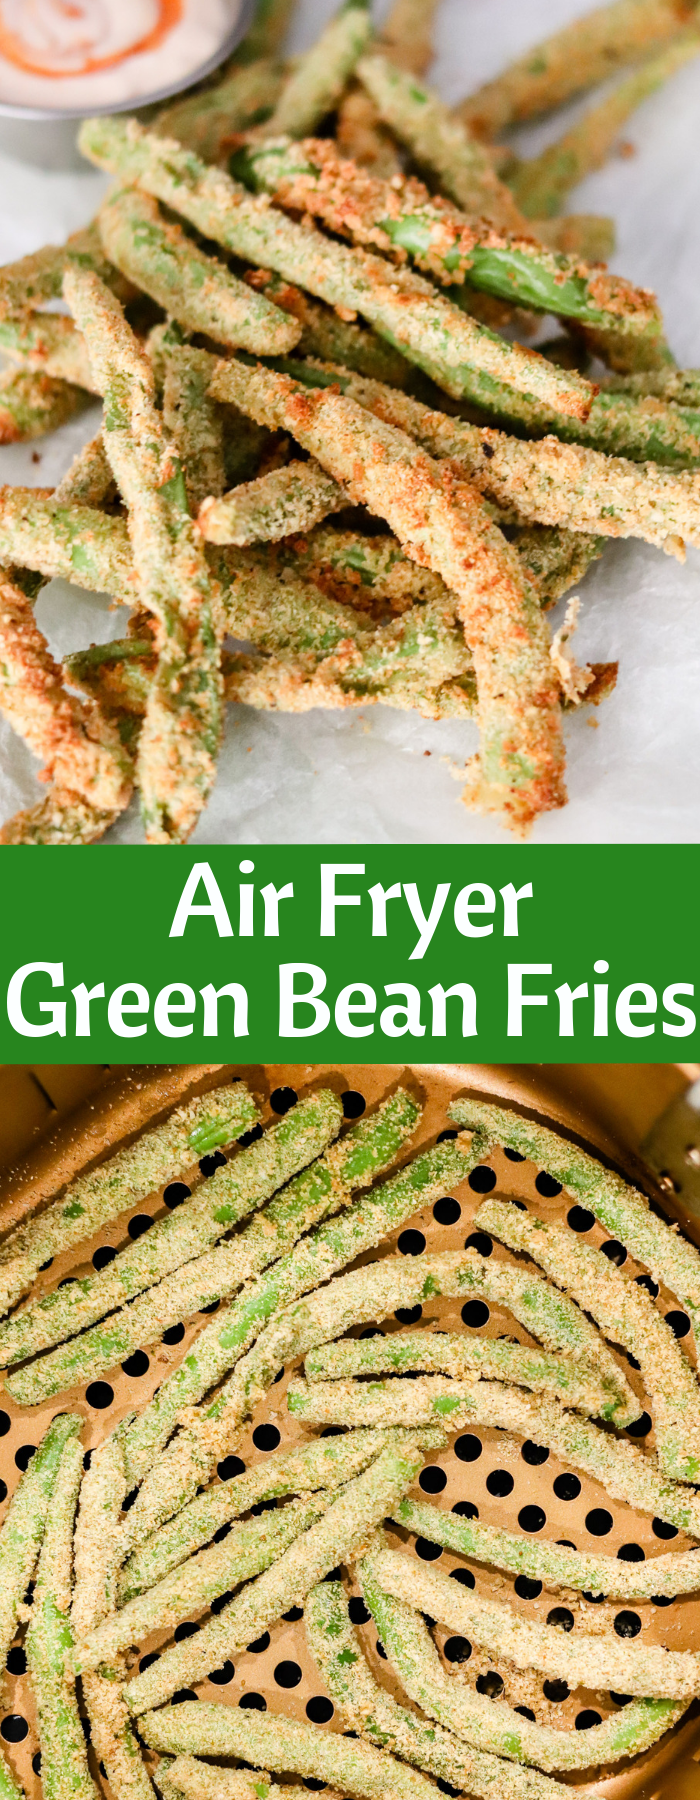 The crispy coating on these Air Fryer Green Bean Fries makes them perfect snack! With no oil and only a handful of ingredients, it's easy and guilt-free.